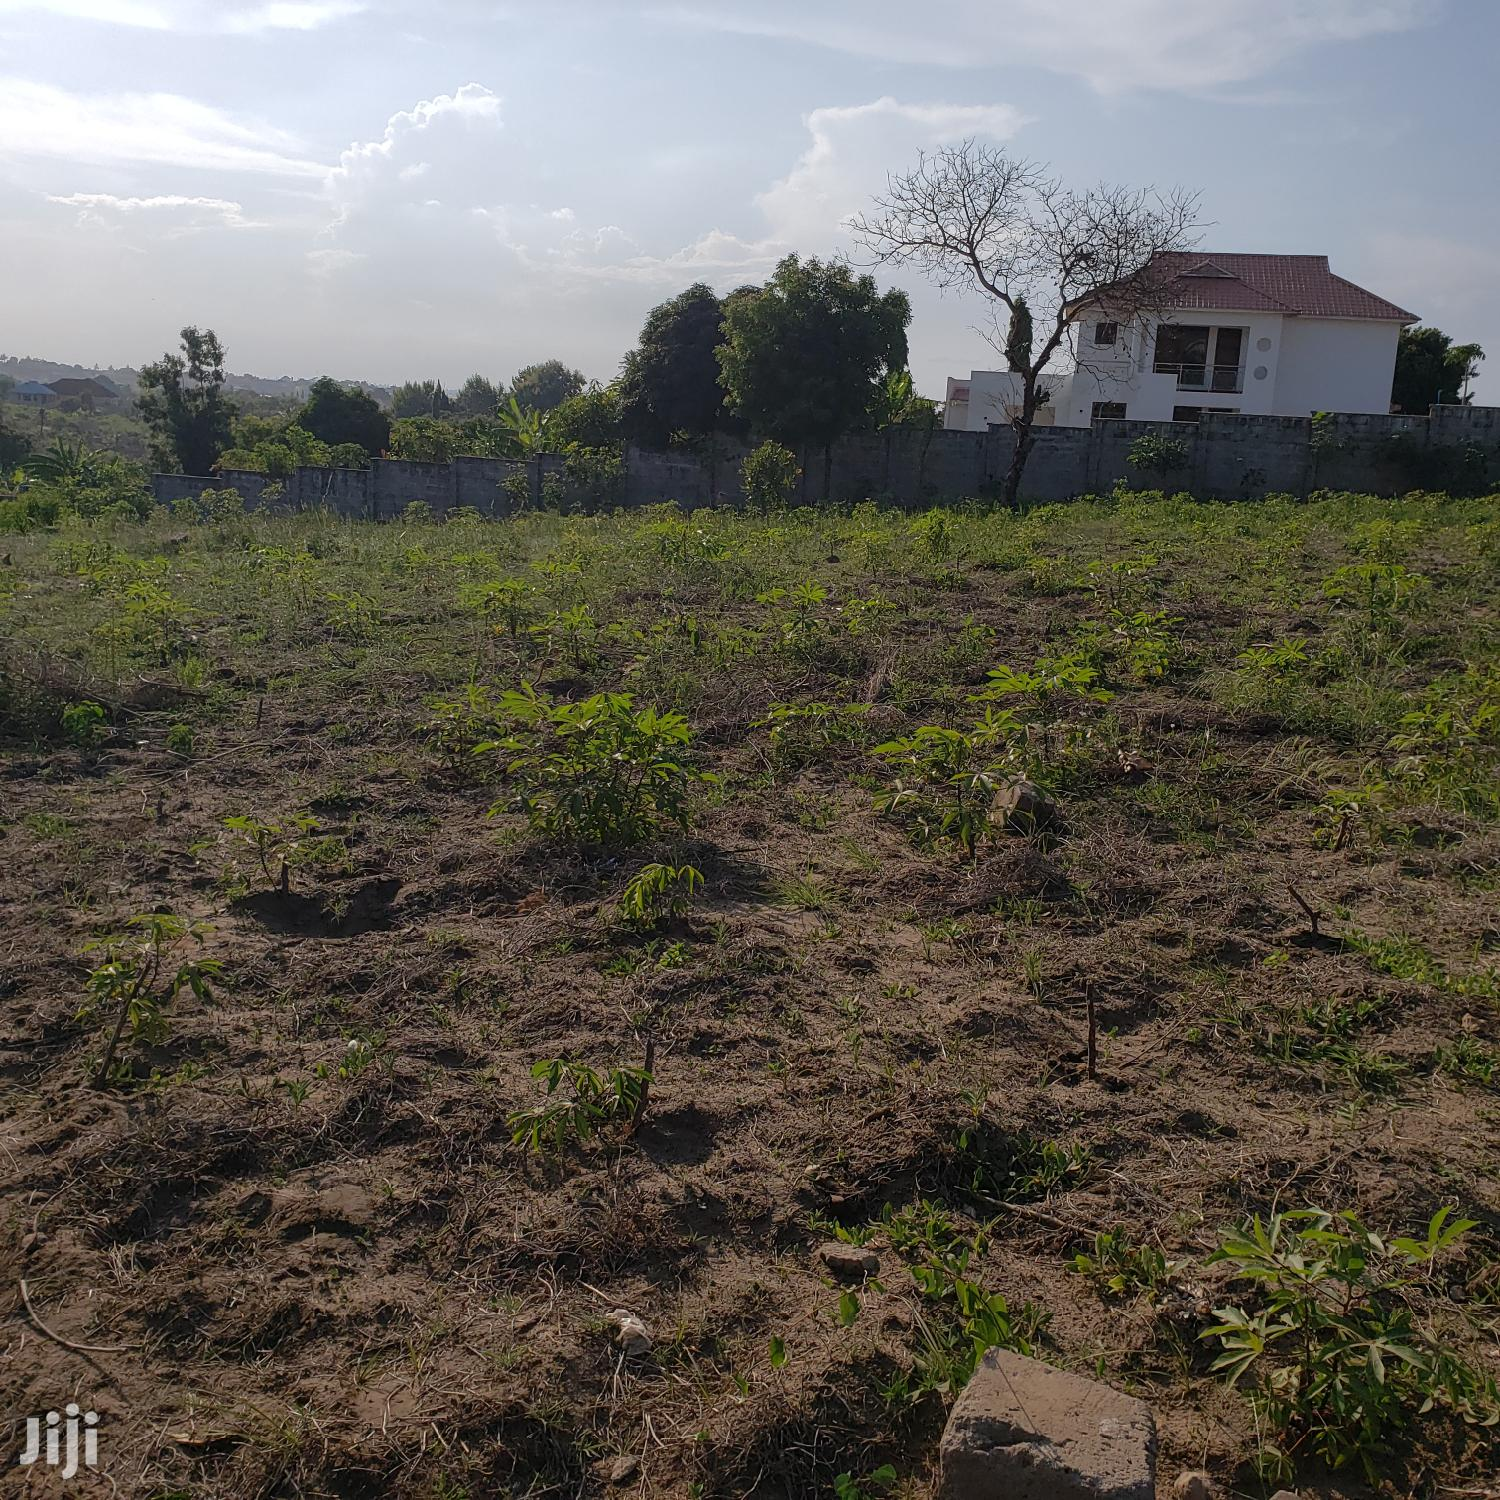 Two Plots Available for Sale in One Area